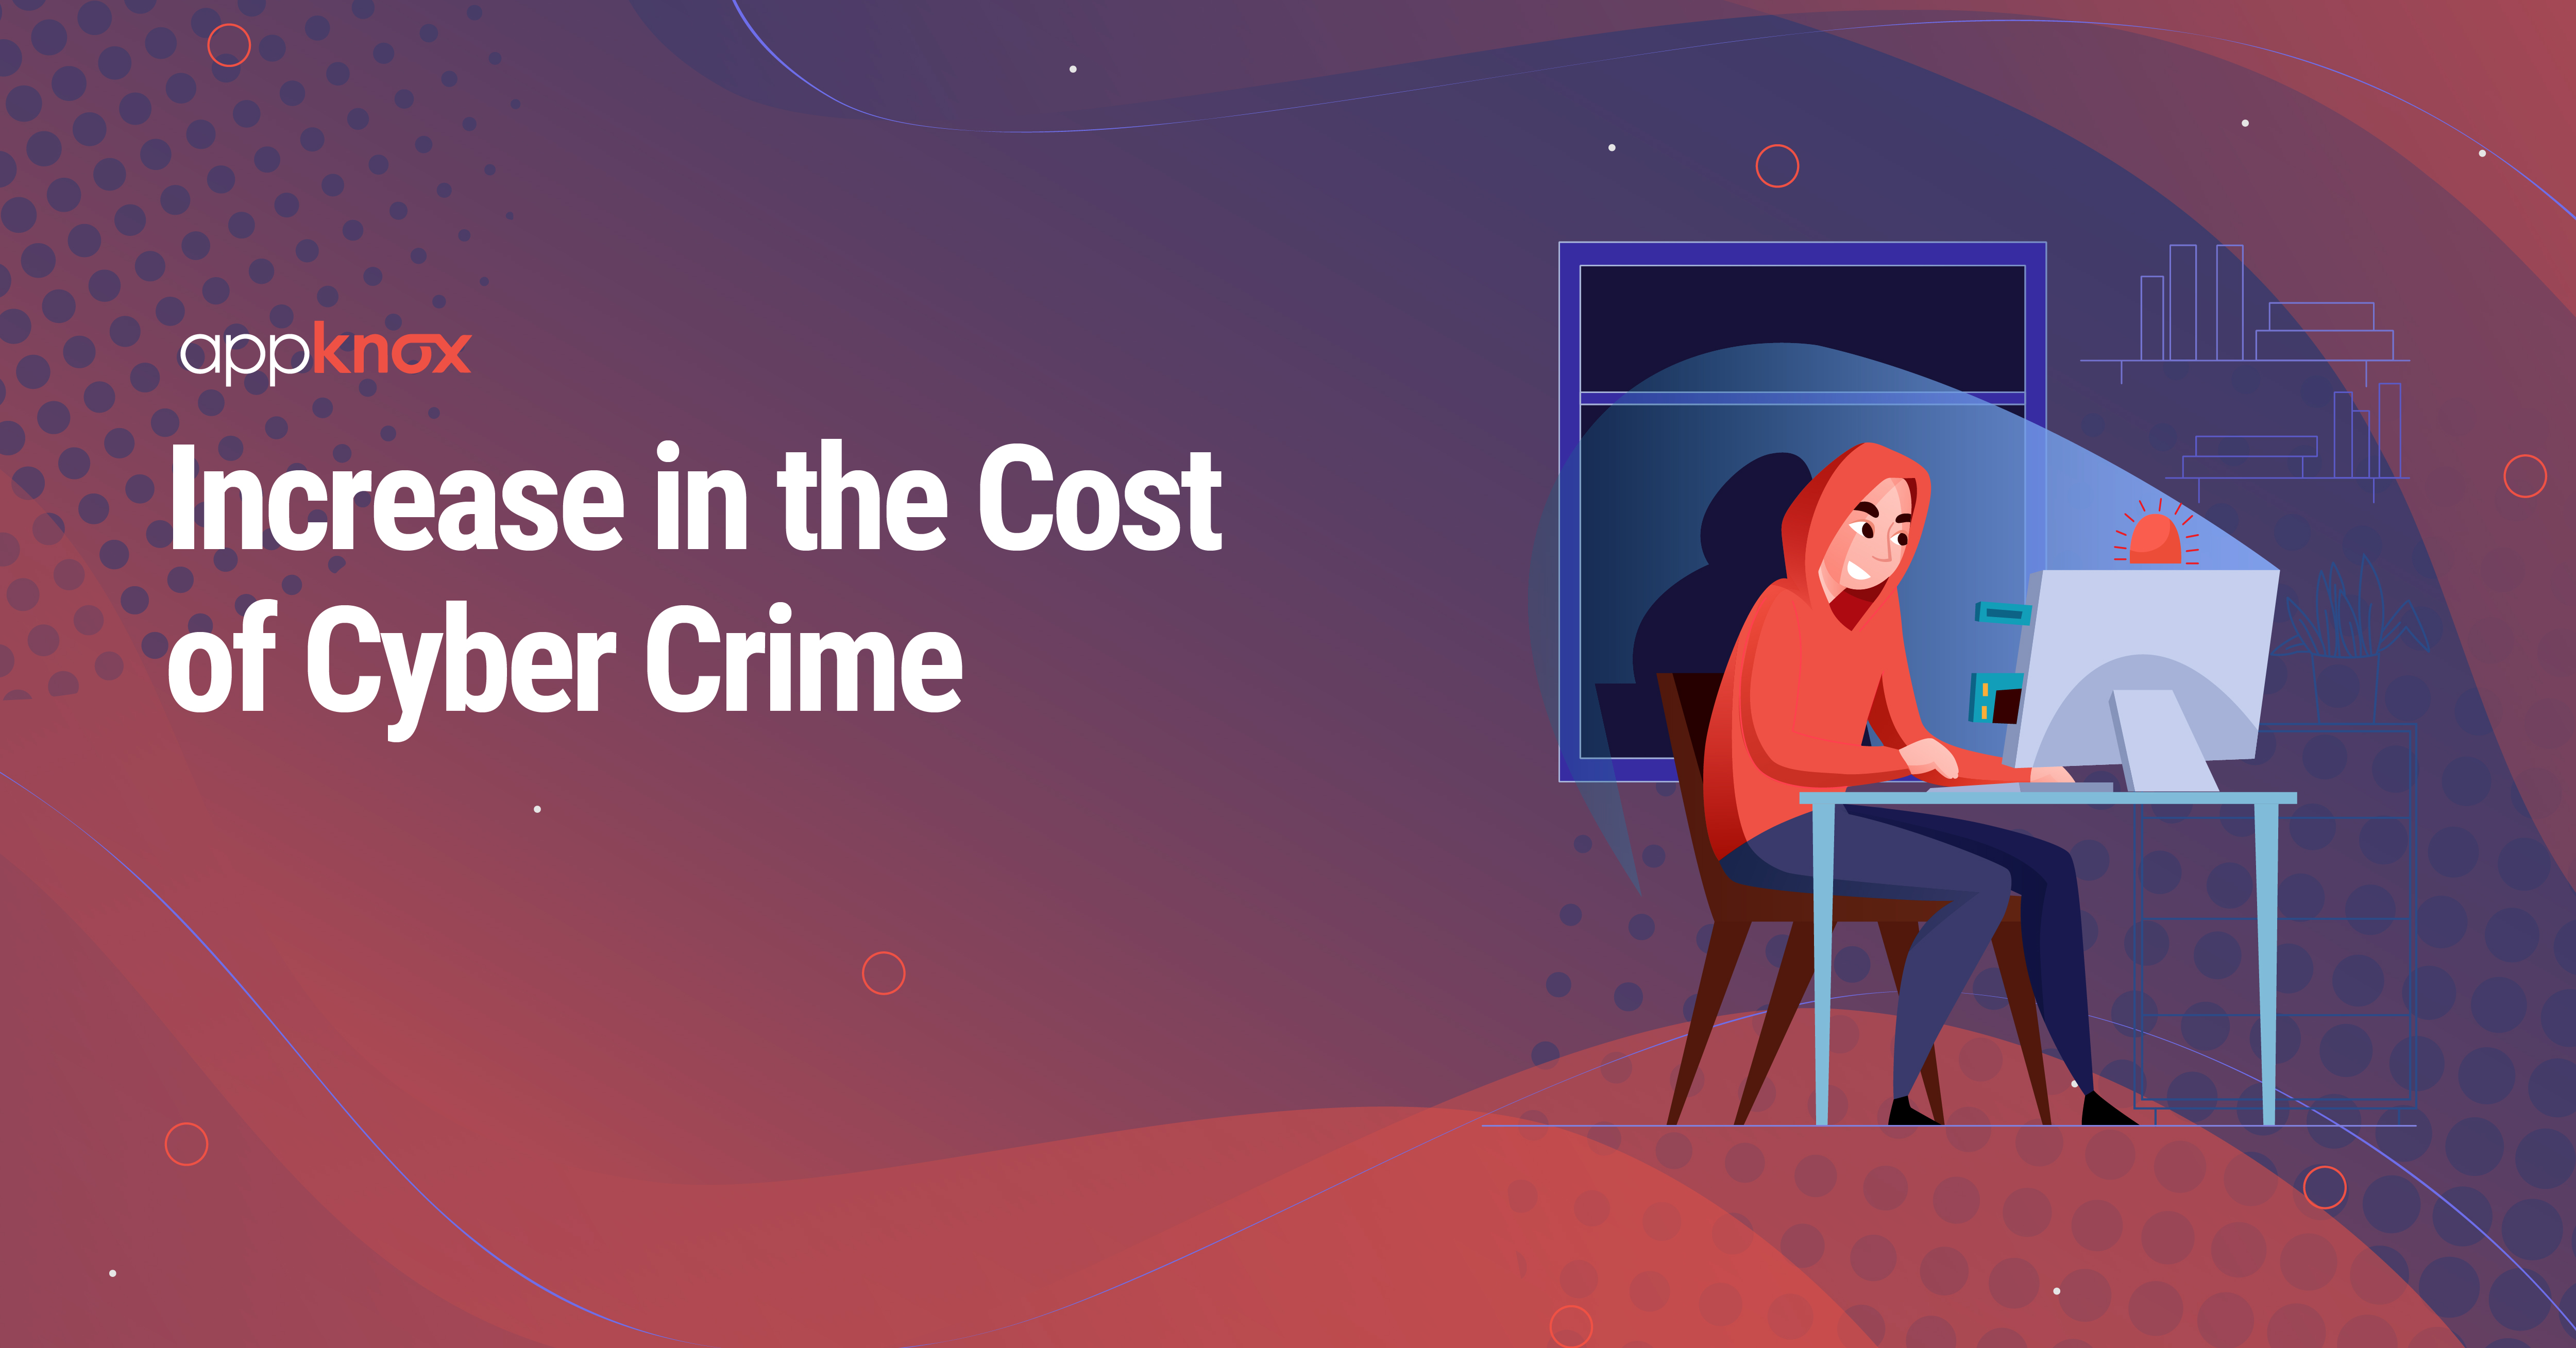 Increase in the cost of cybercrime